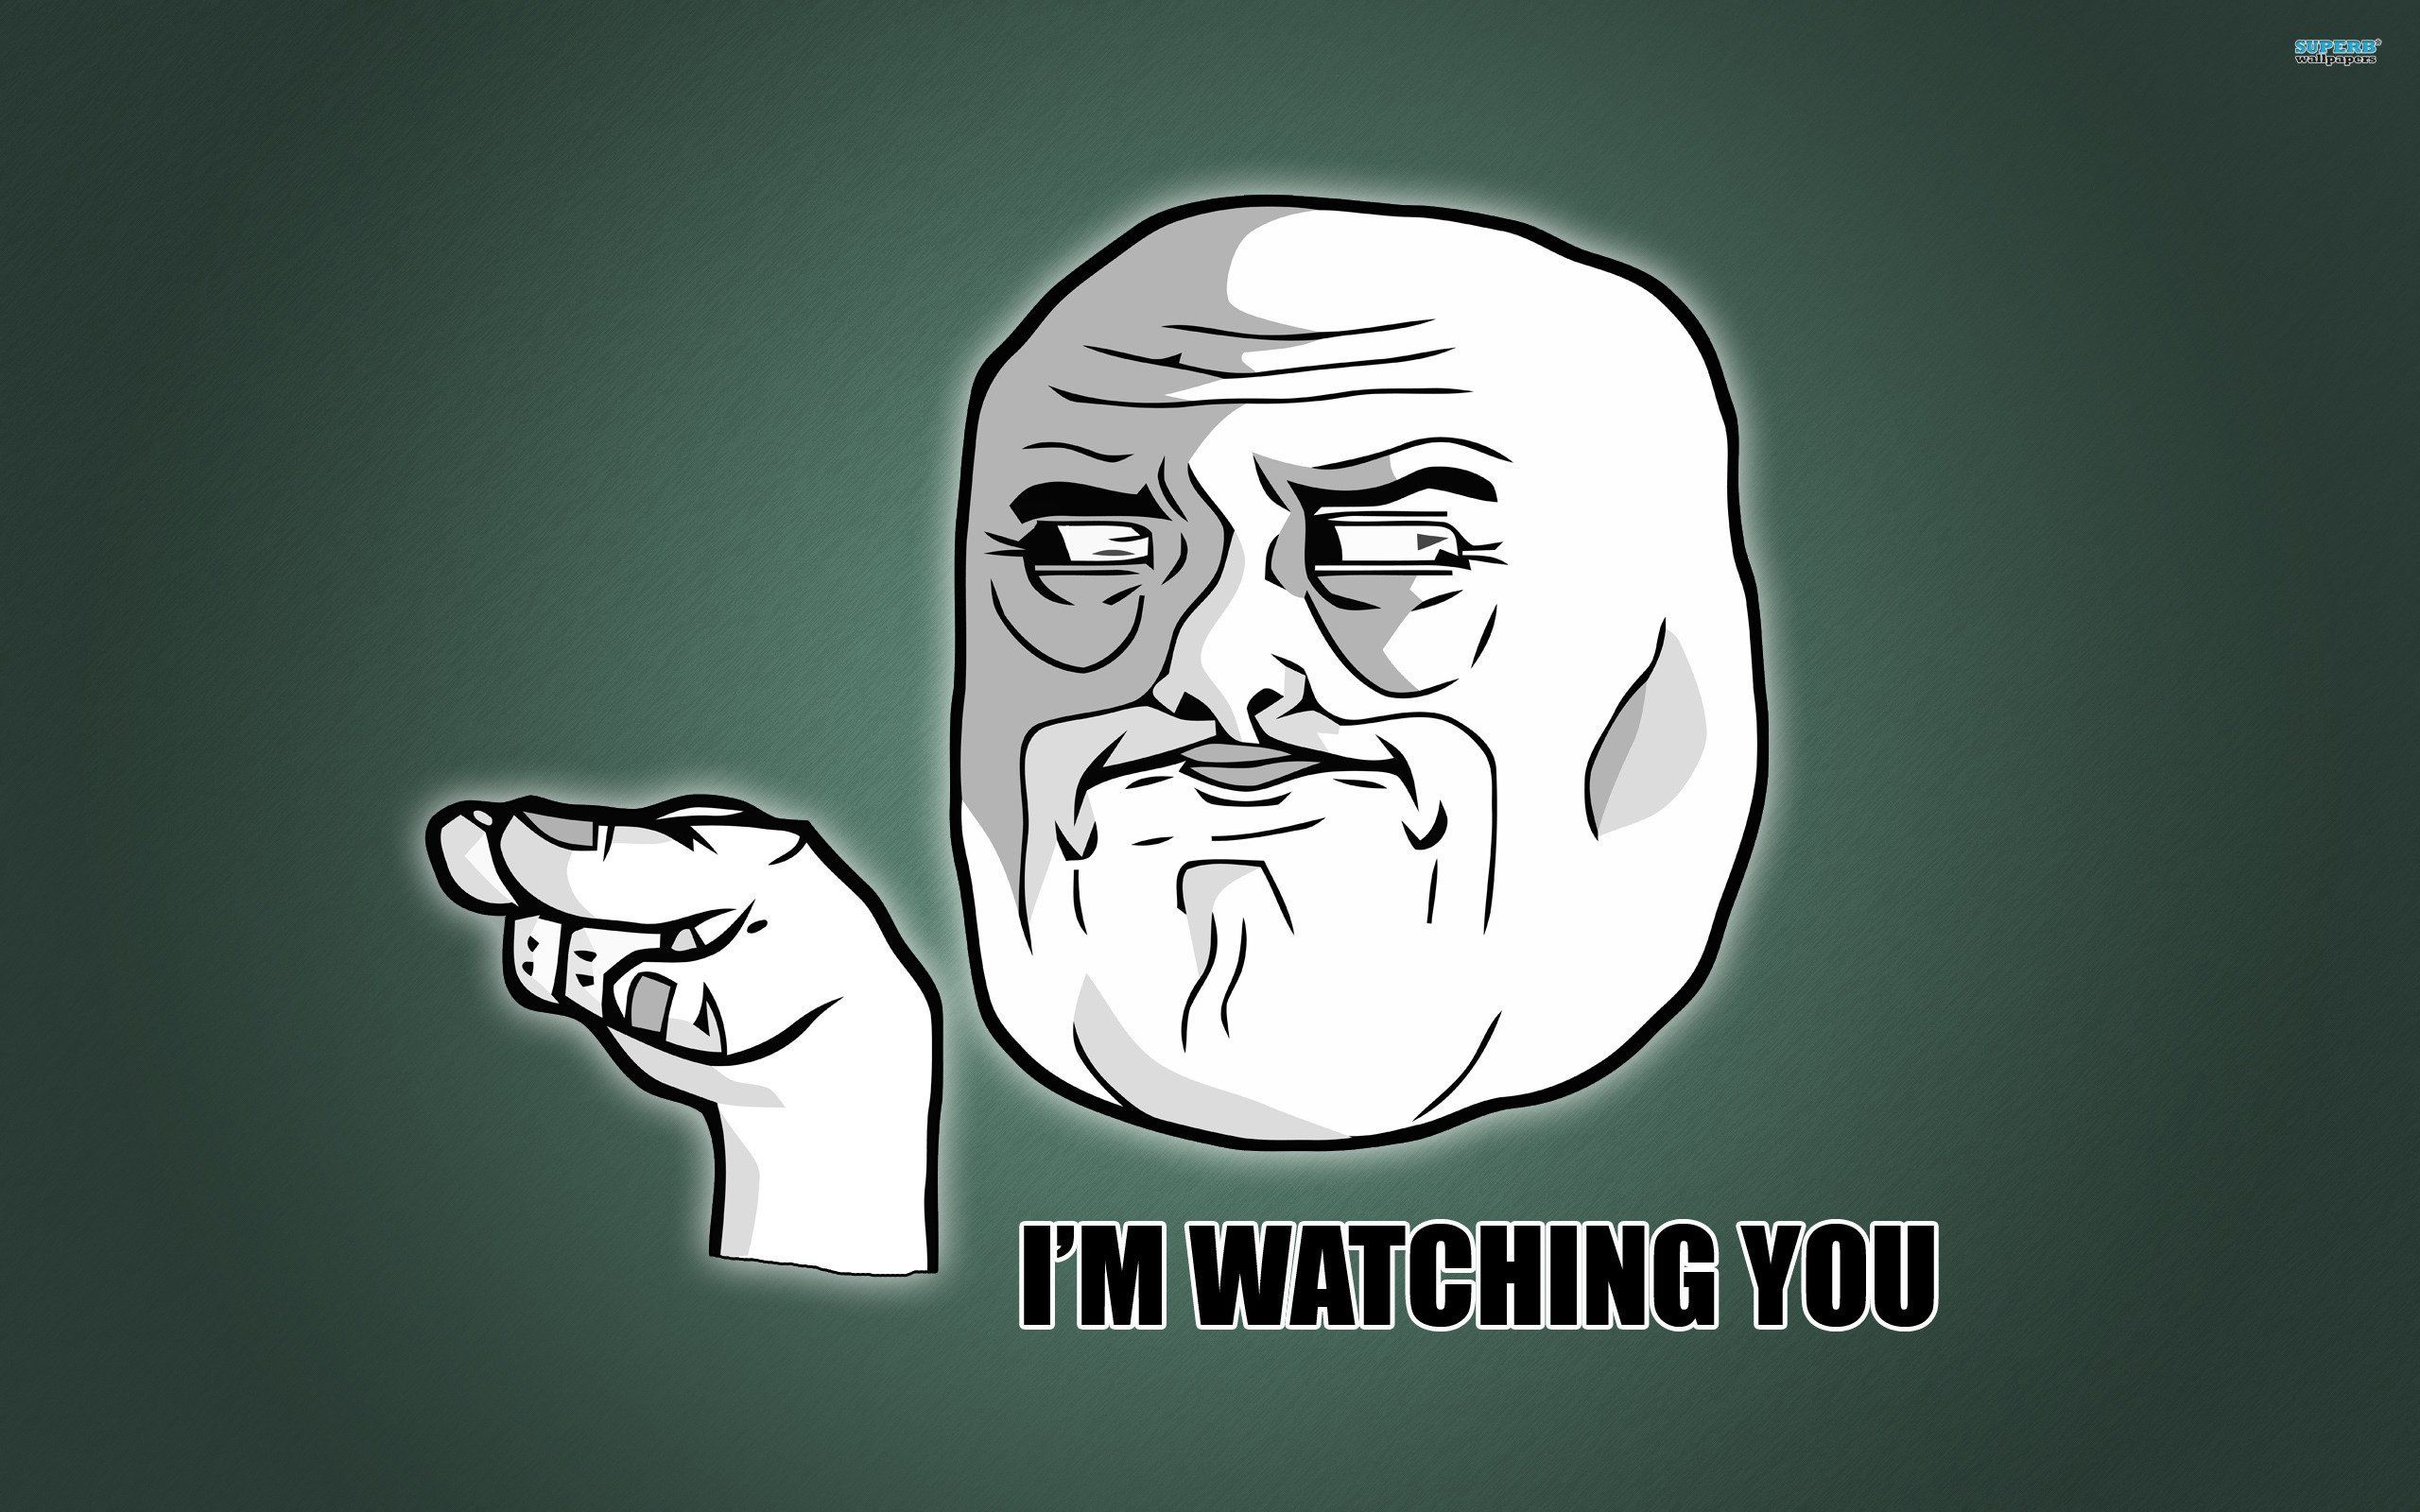 I M Watching You Meme Wallpaper Walldevil Best Free Hd Desktop